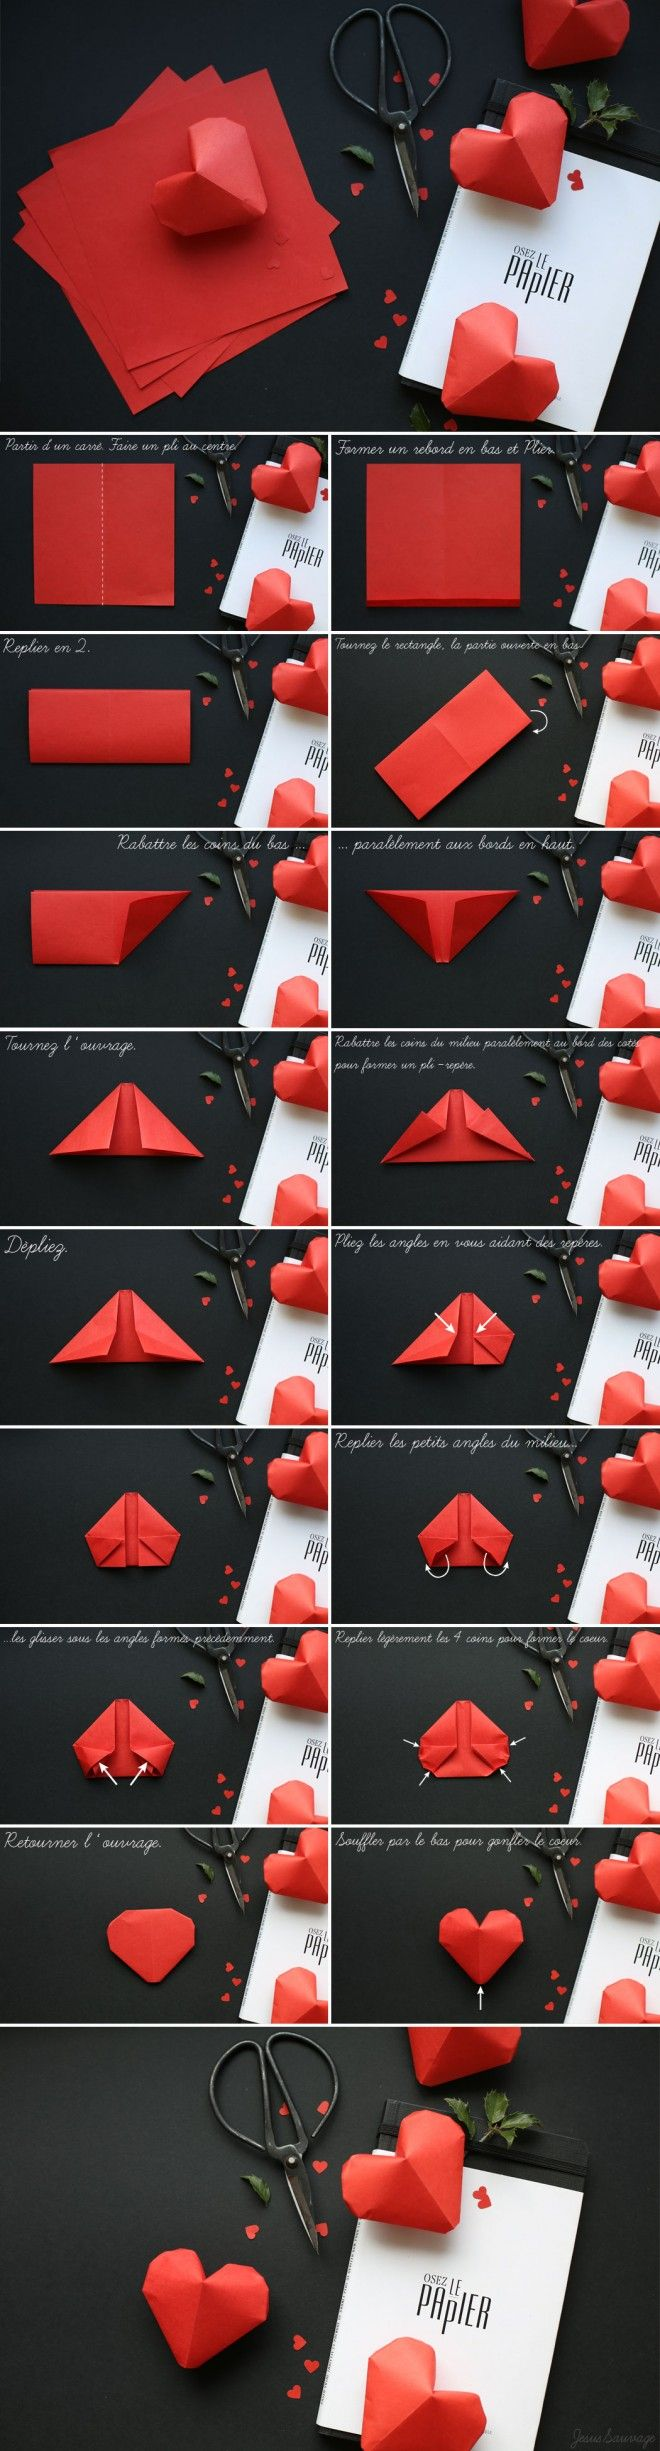 Valentine's Day - How to Fold an Origami Heart (Shirt and Tie) | 2451x660